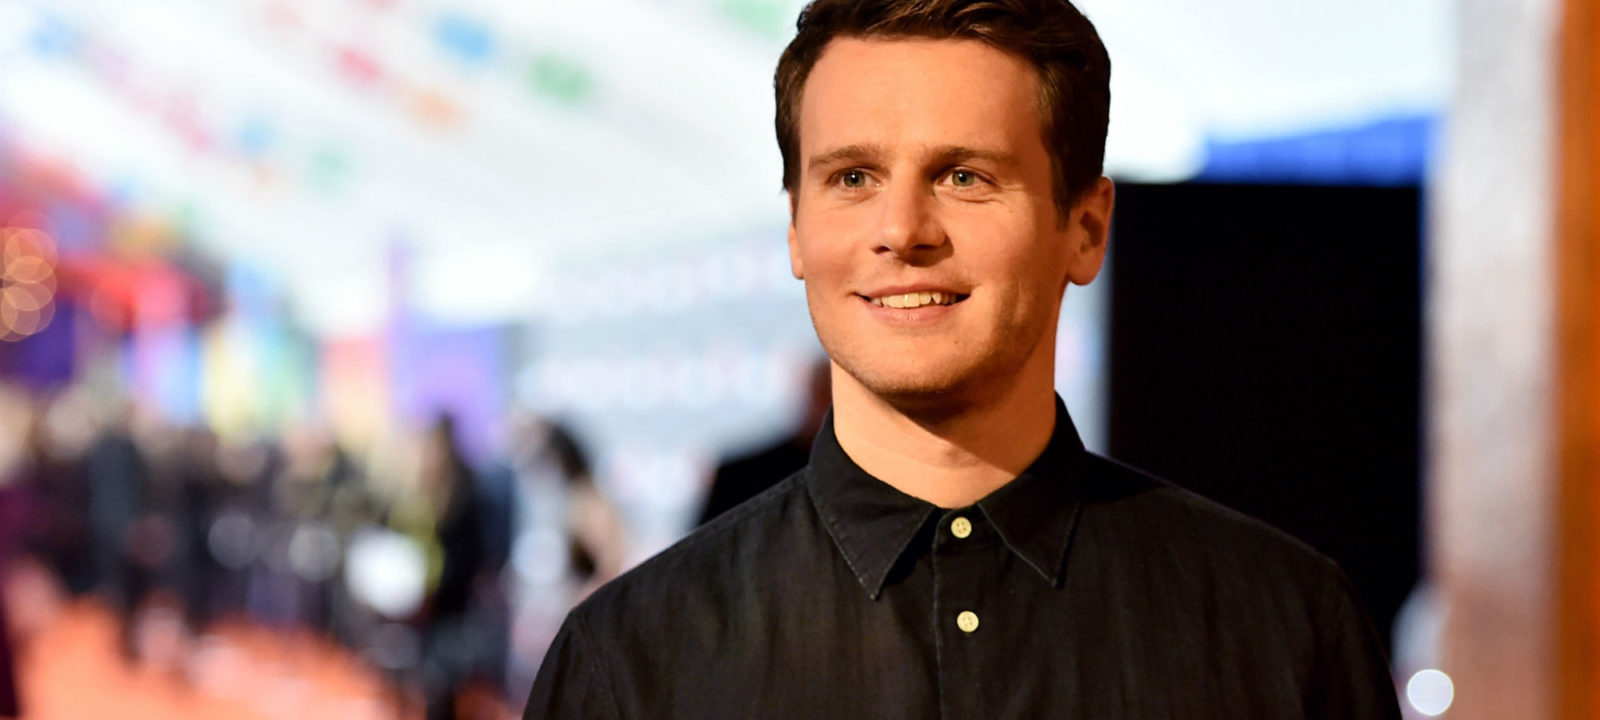 jonathan groff - photo #2